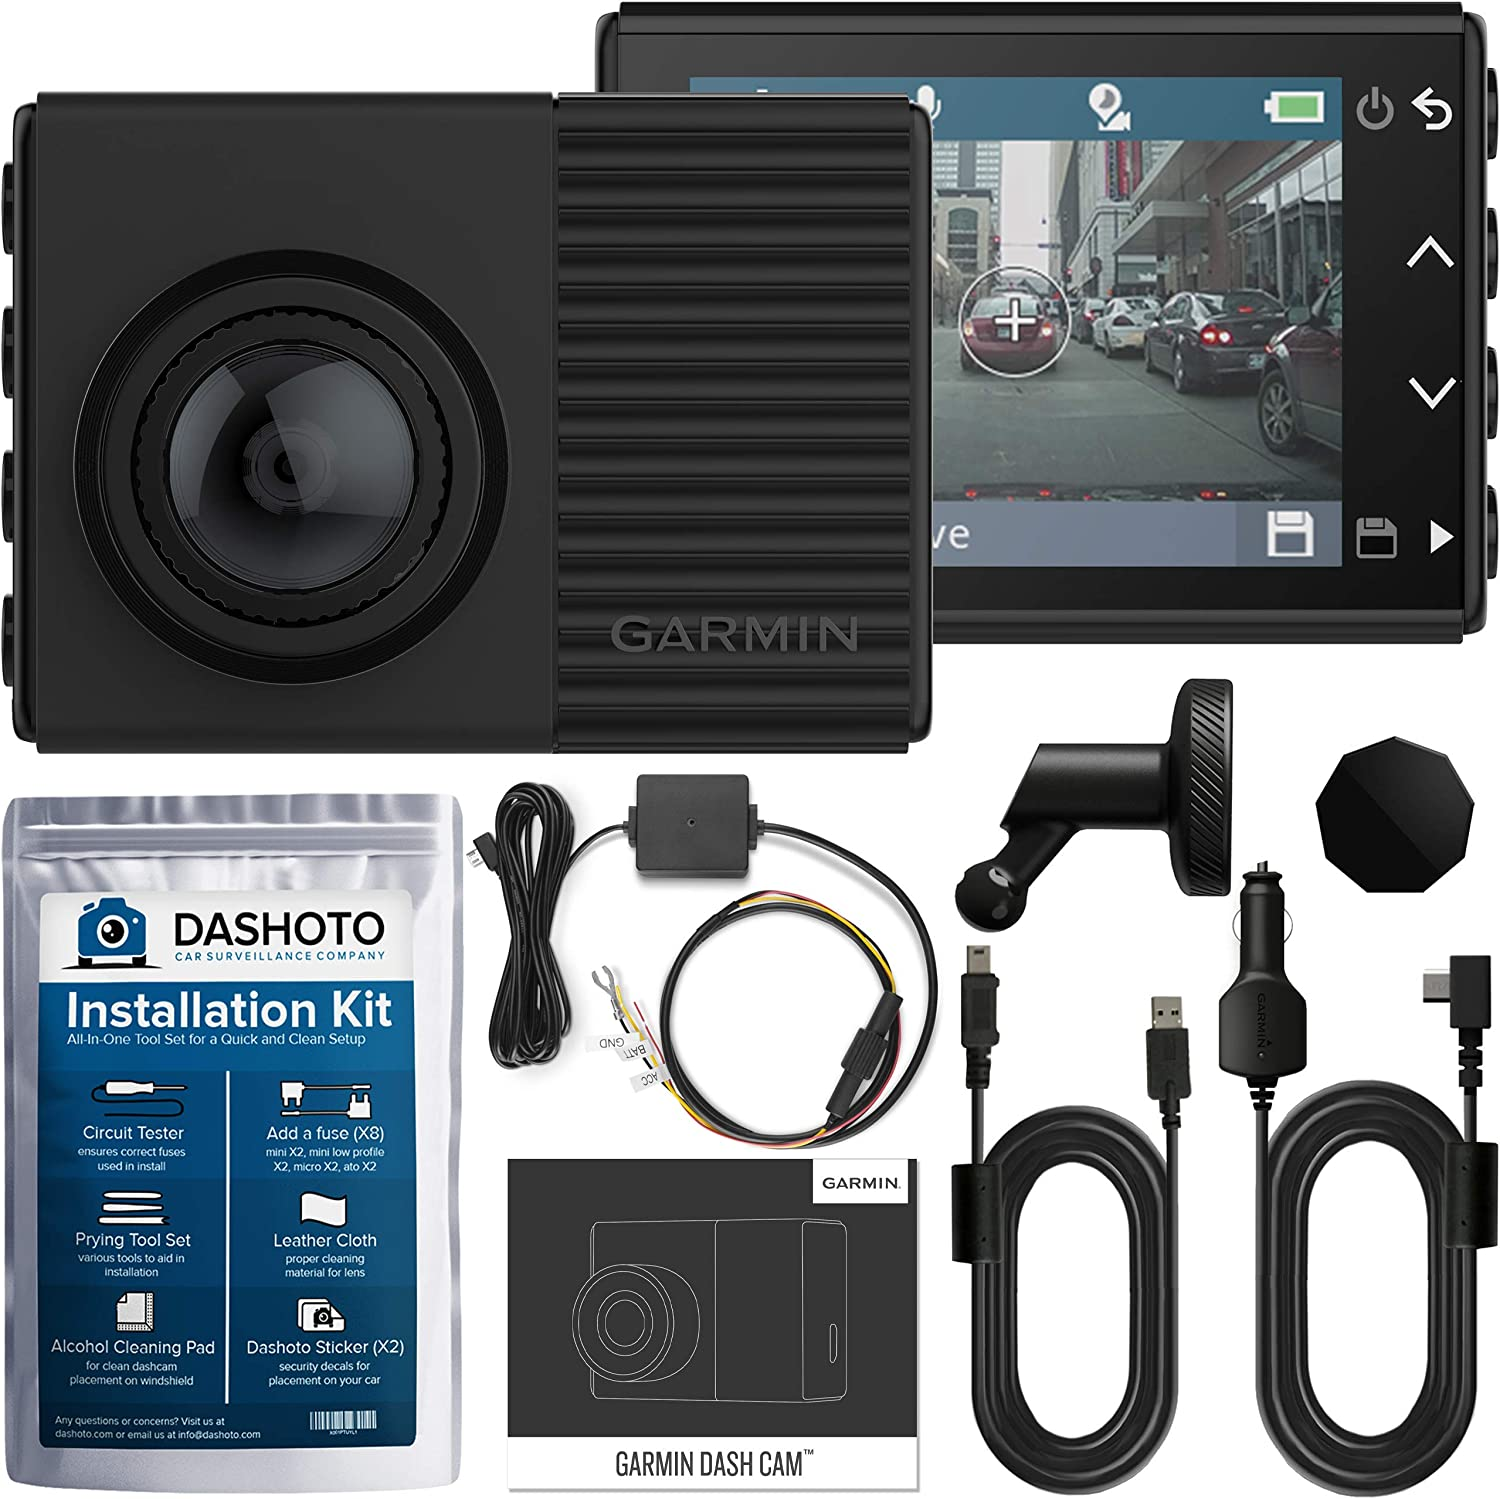 Garmin Dash Cam 66W, 1440P Ultra-Wide HDR Recording, 180 Degree Viewing Angle, WiFi, GPS and Voice Control with Parking Mode Cable and Installation Kit Included (New 2020)